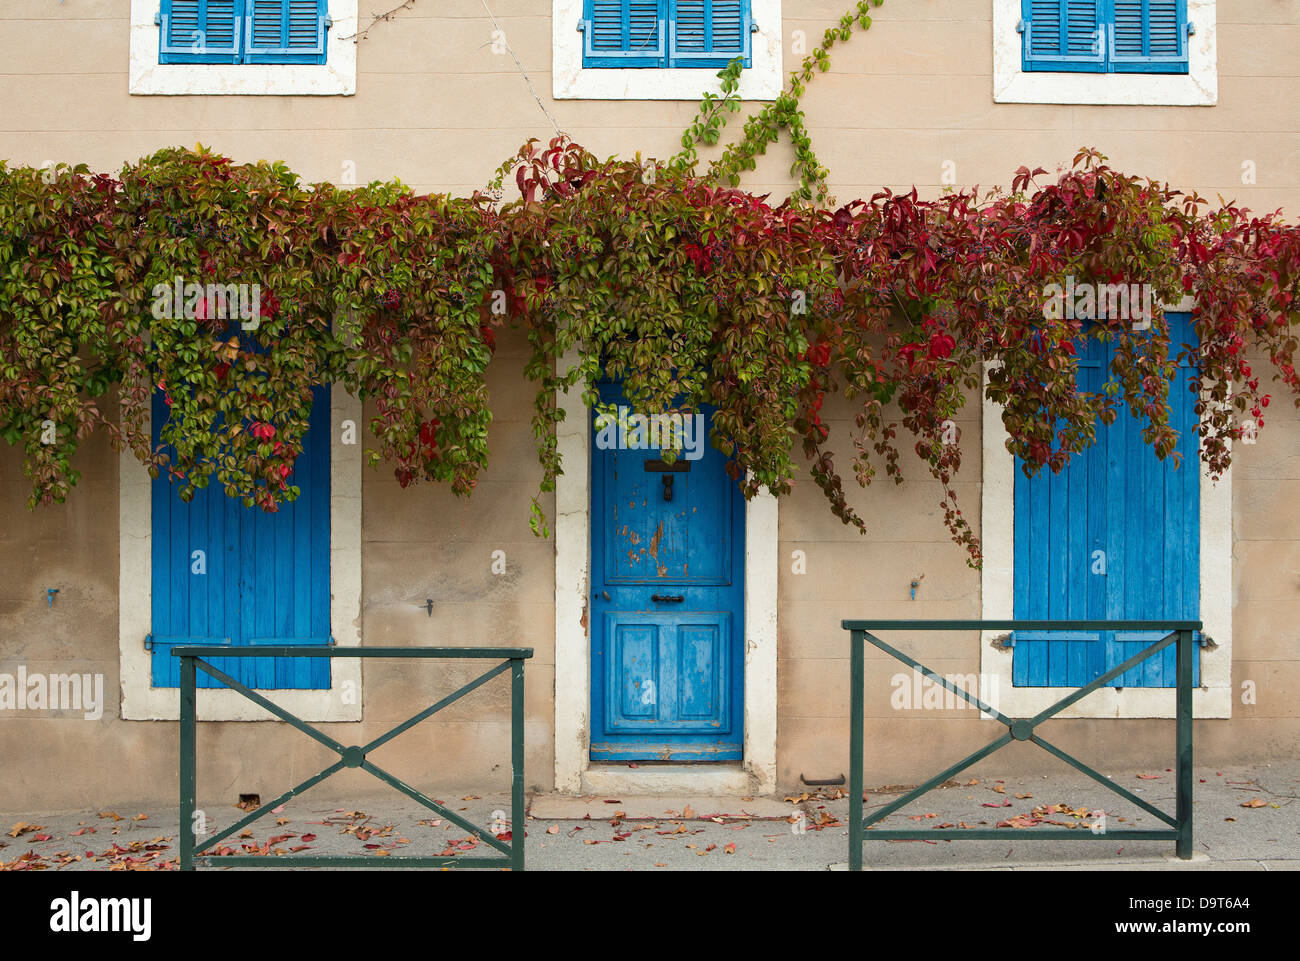 a doorway in Puyloubier, Var, Provence, France - Stock Image